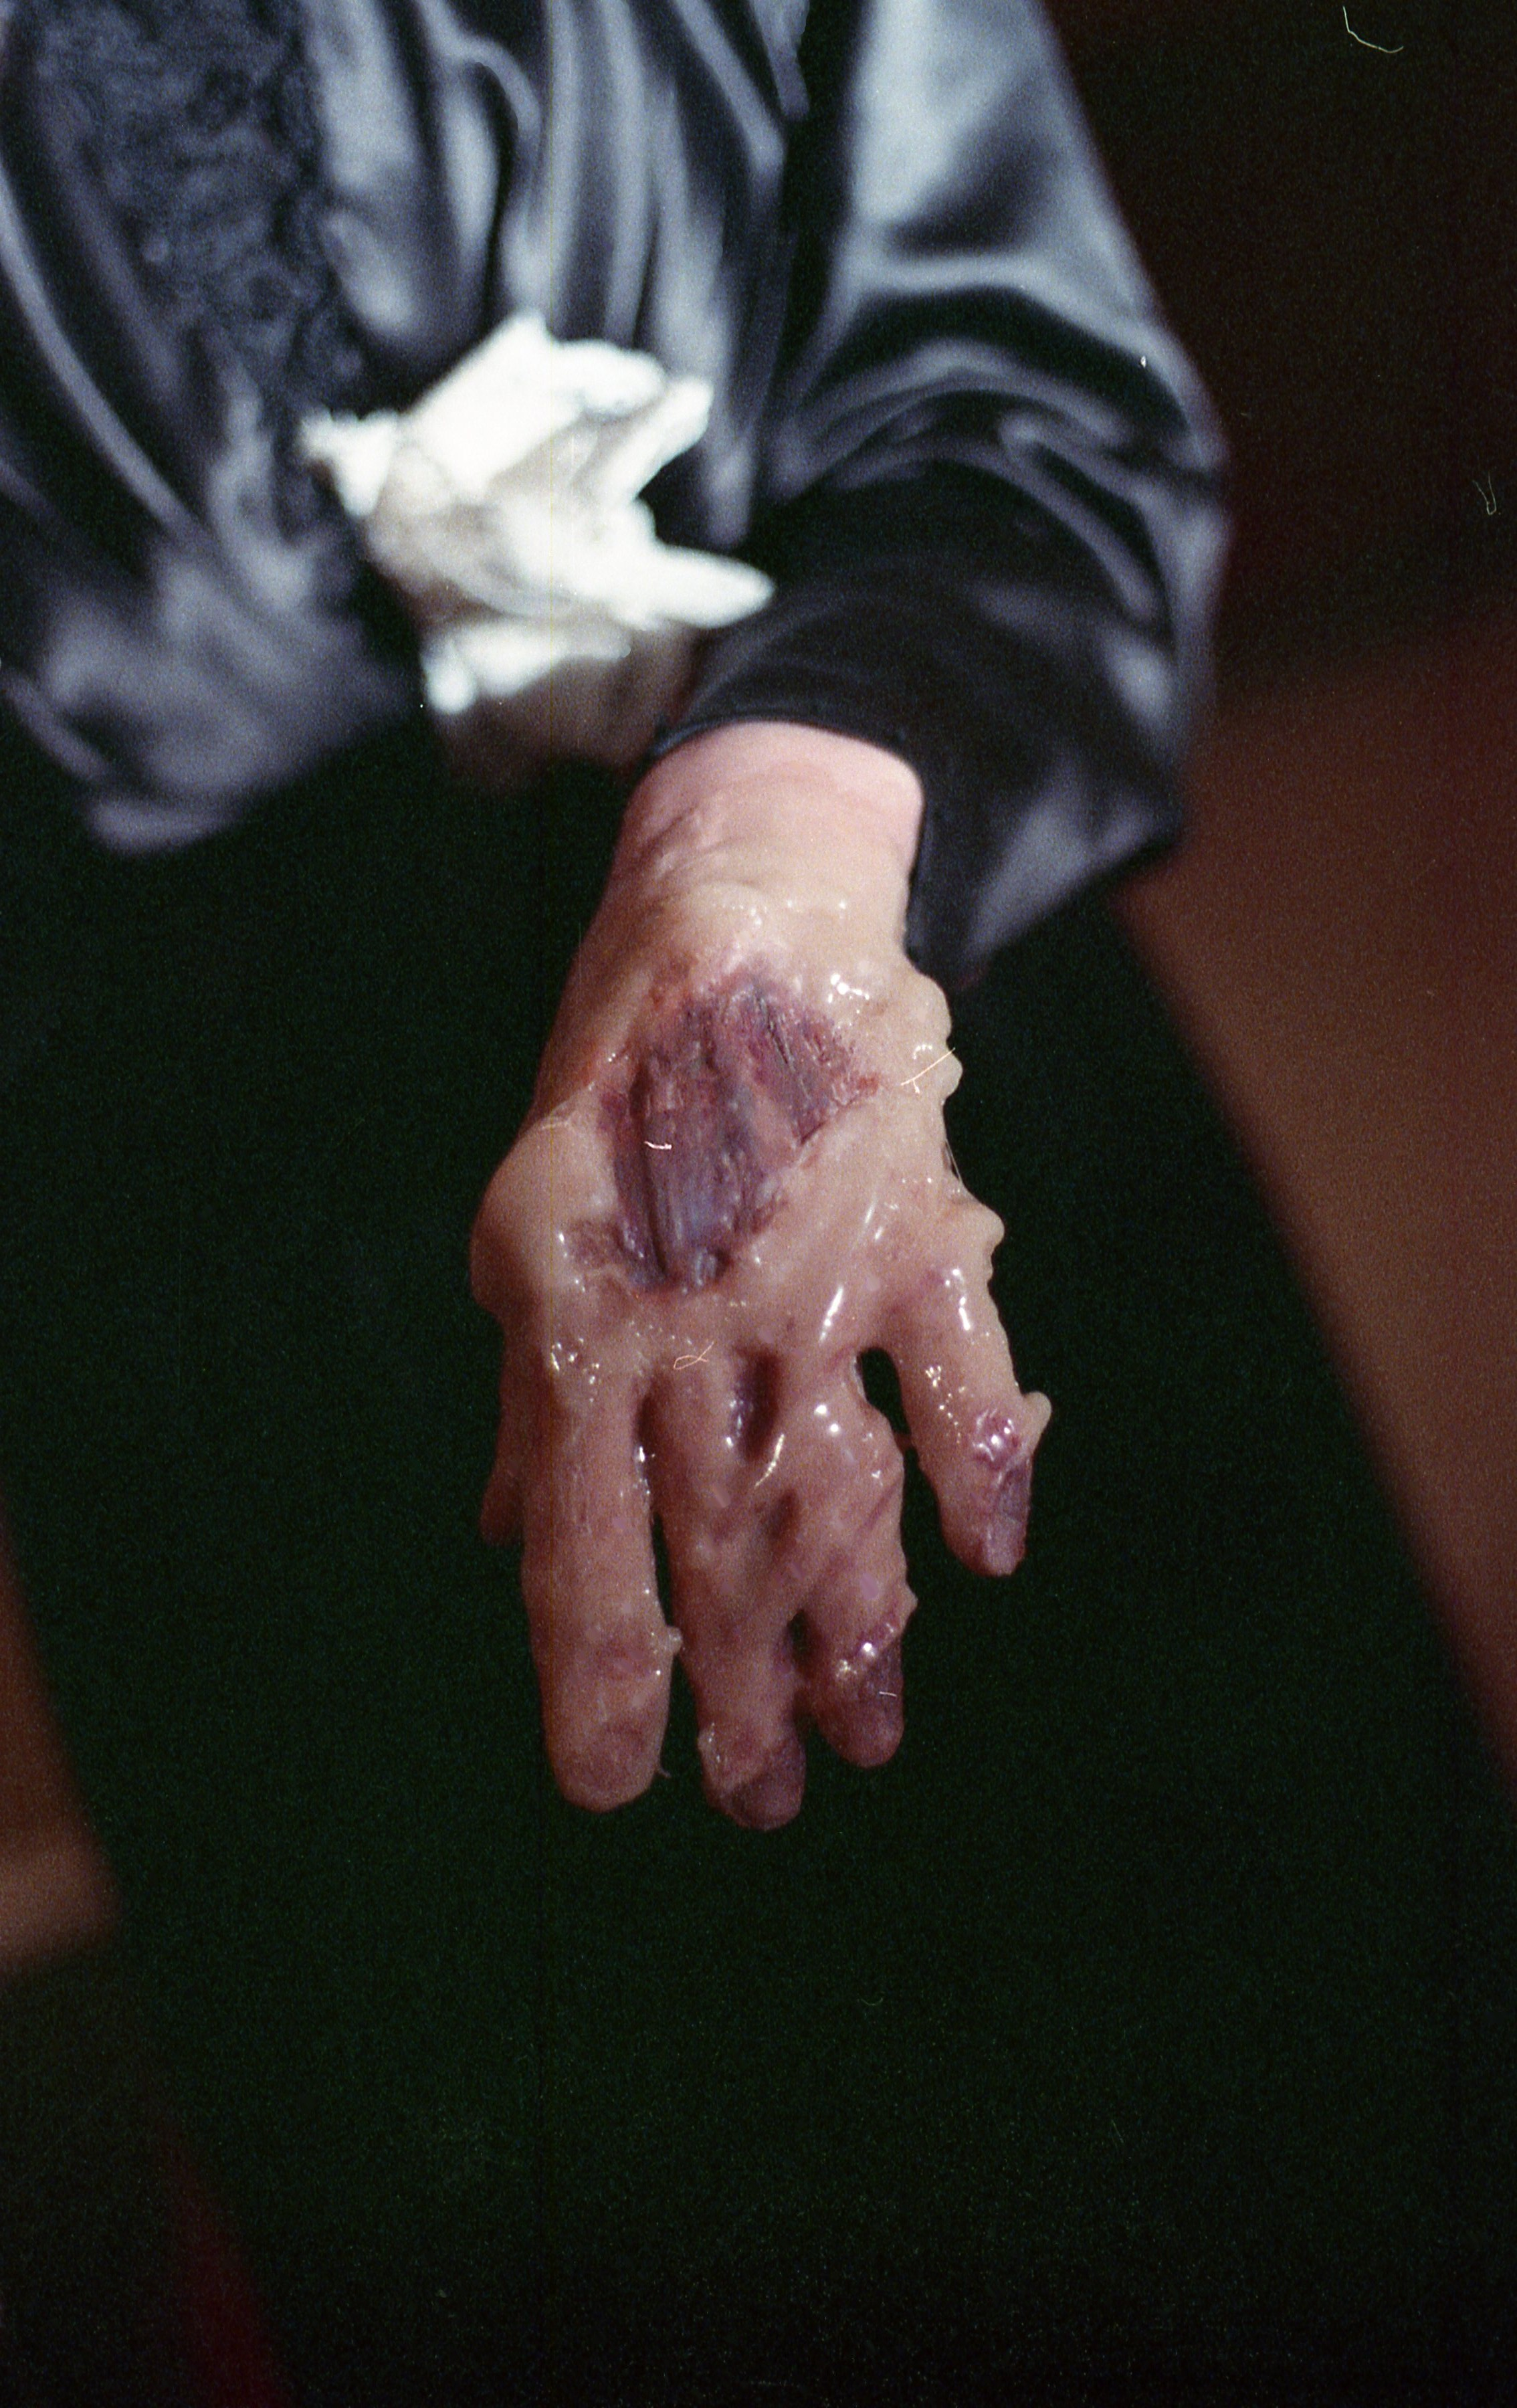 melting wax hand